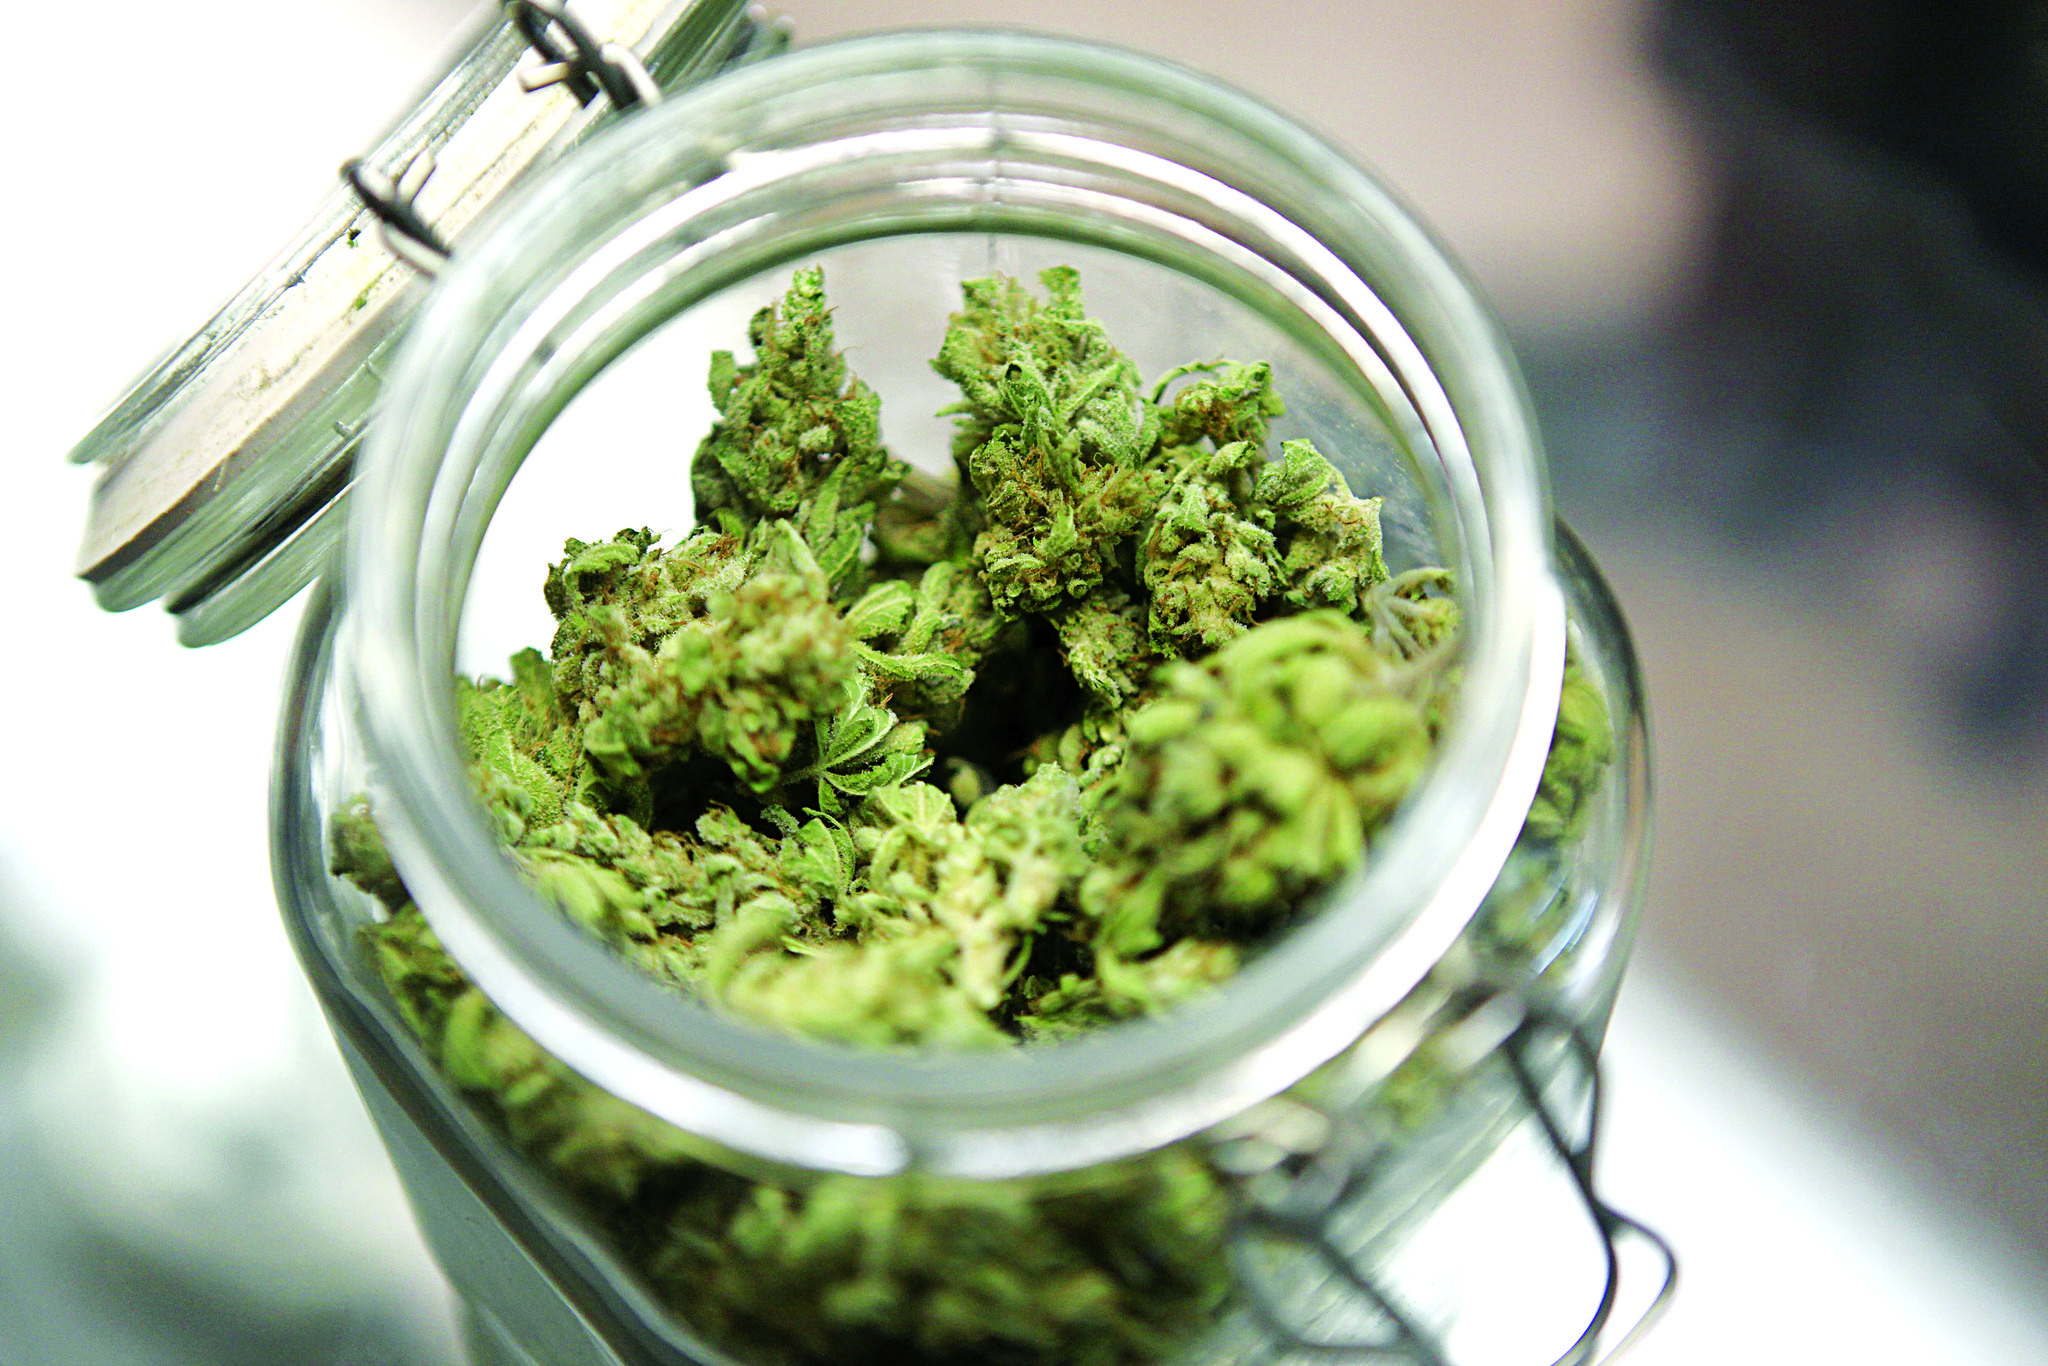 Medical marijuana is shown in a jar at The Joint Cooperative in Seattle.